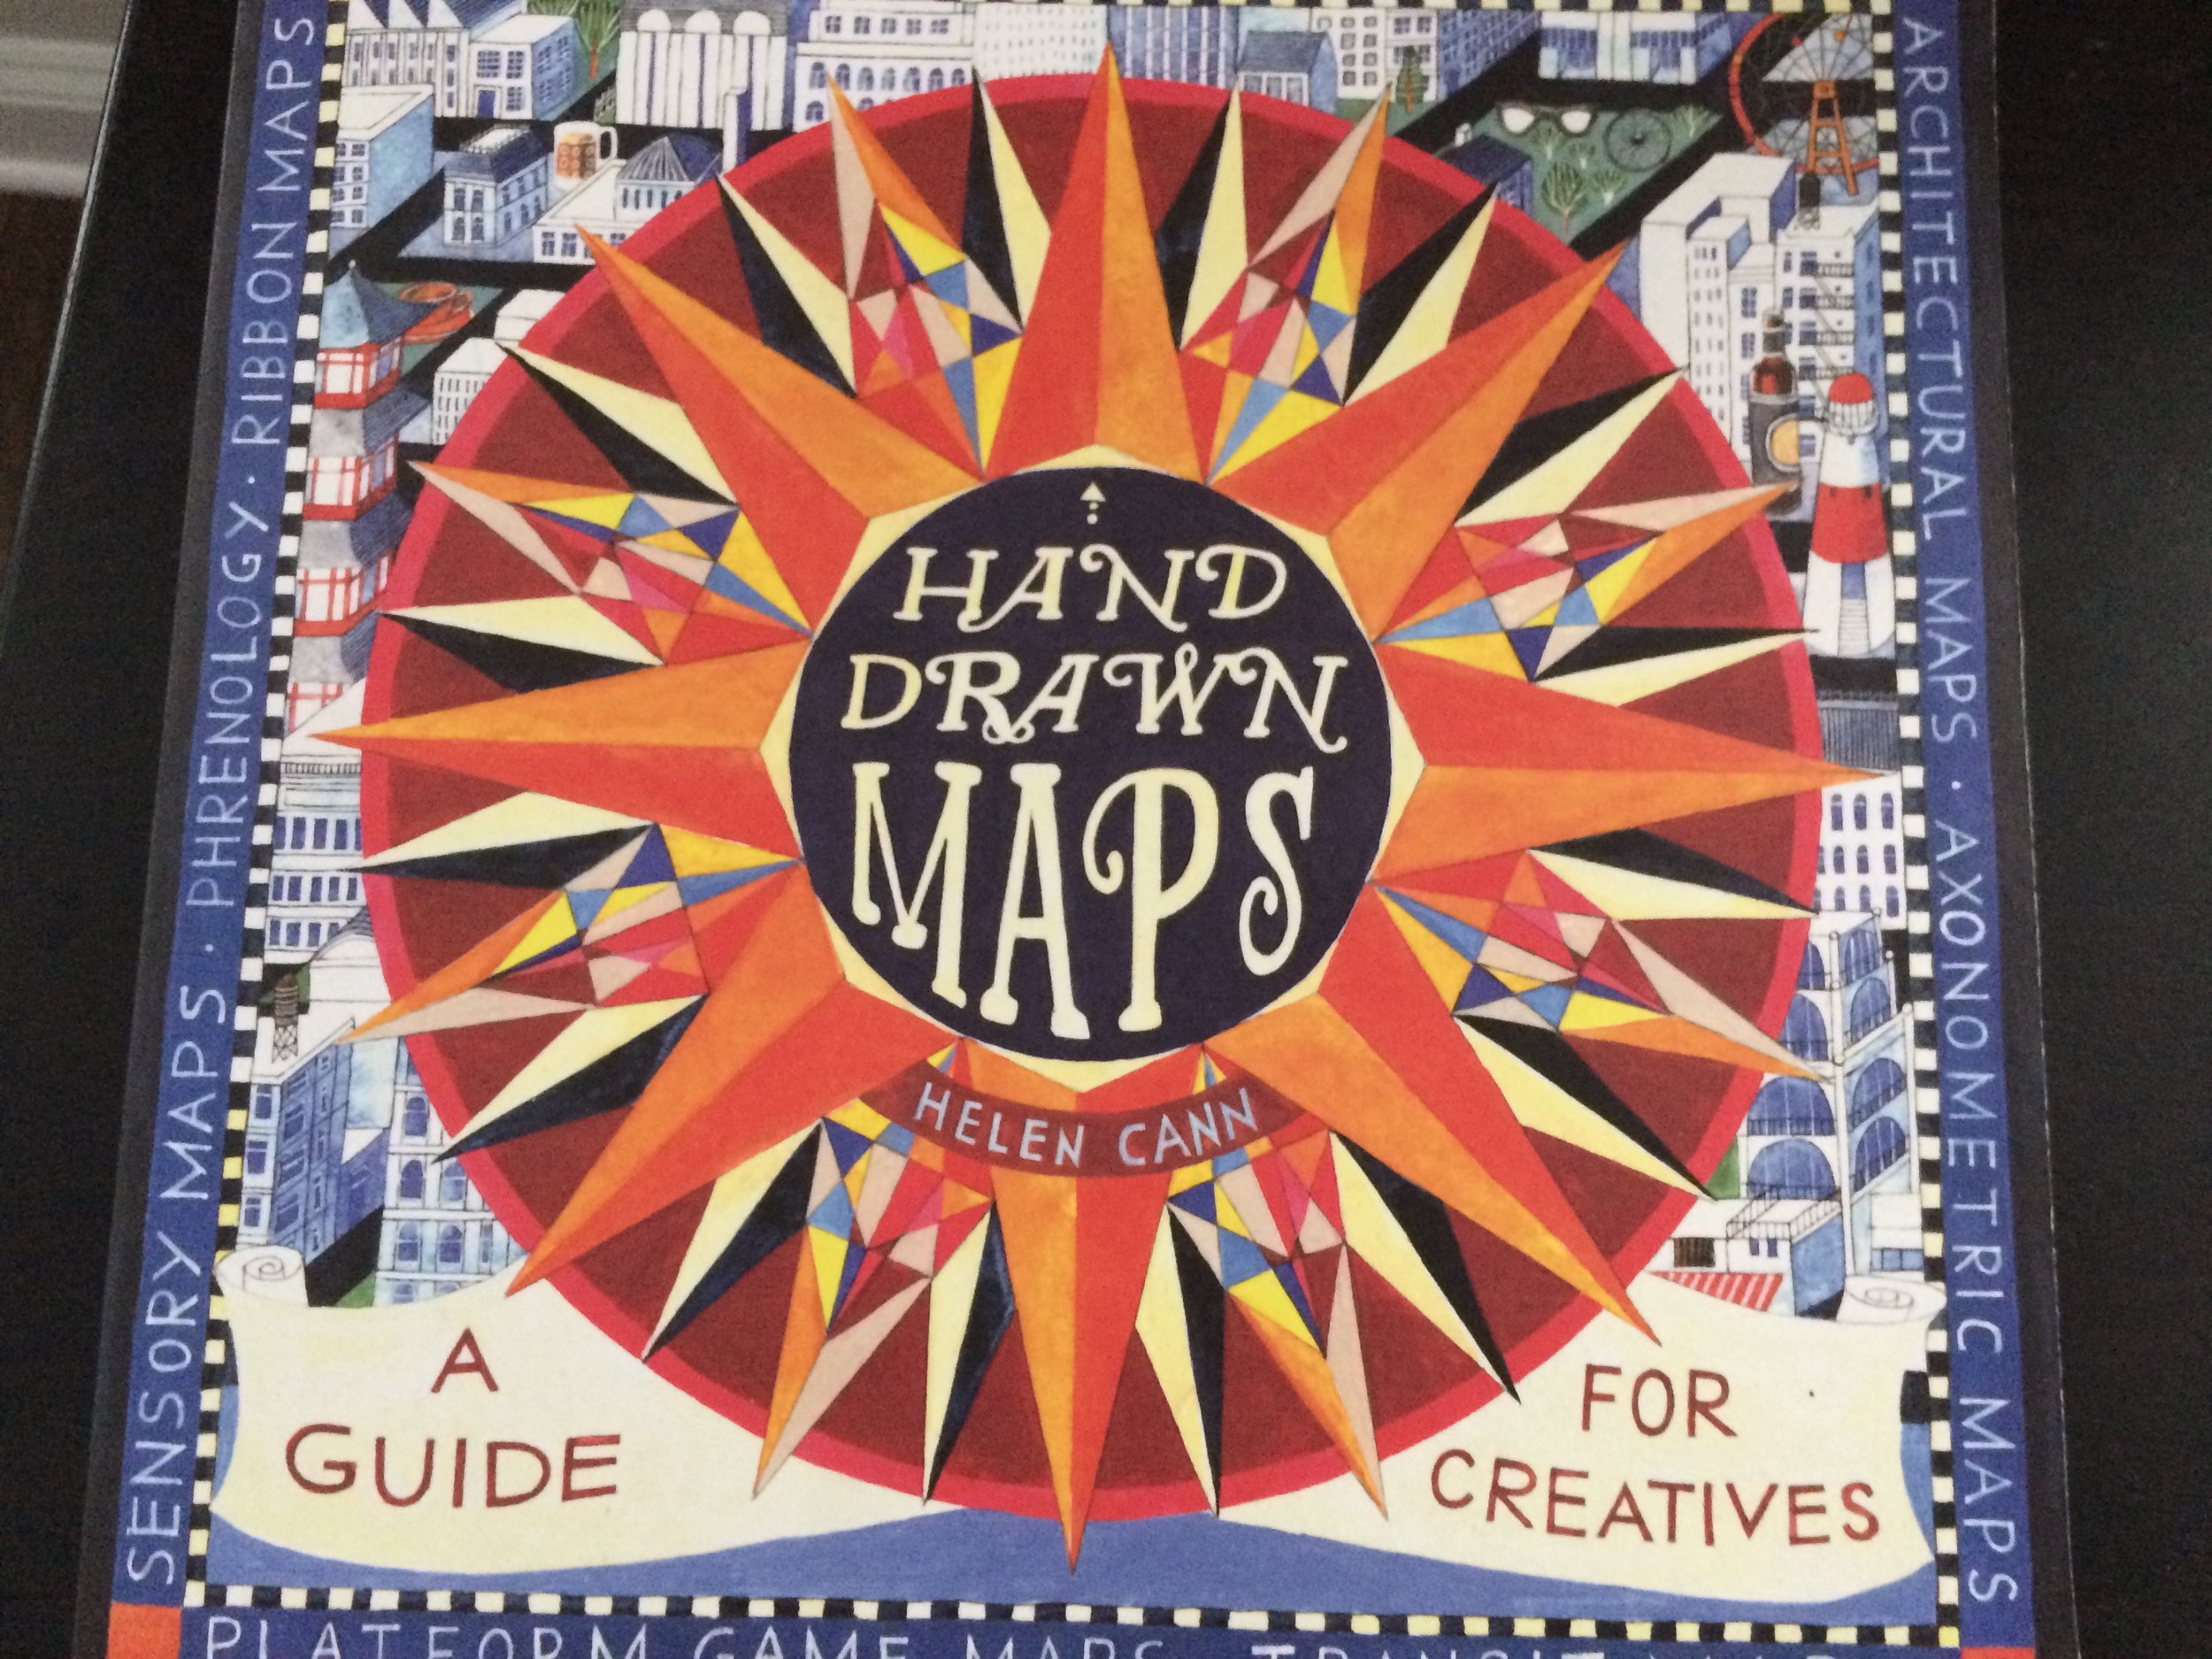 - This book is a beautiful compilation of maps and hard to put down. Very enjoyable to skim and appreciate the illustrations on a rainy day or Summer afternoon.